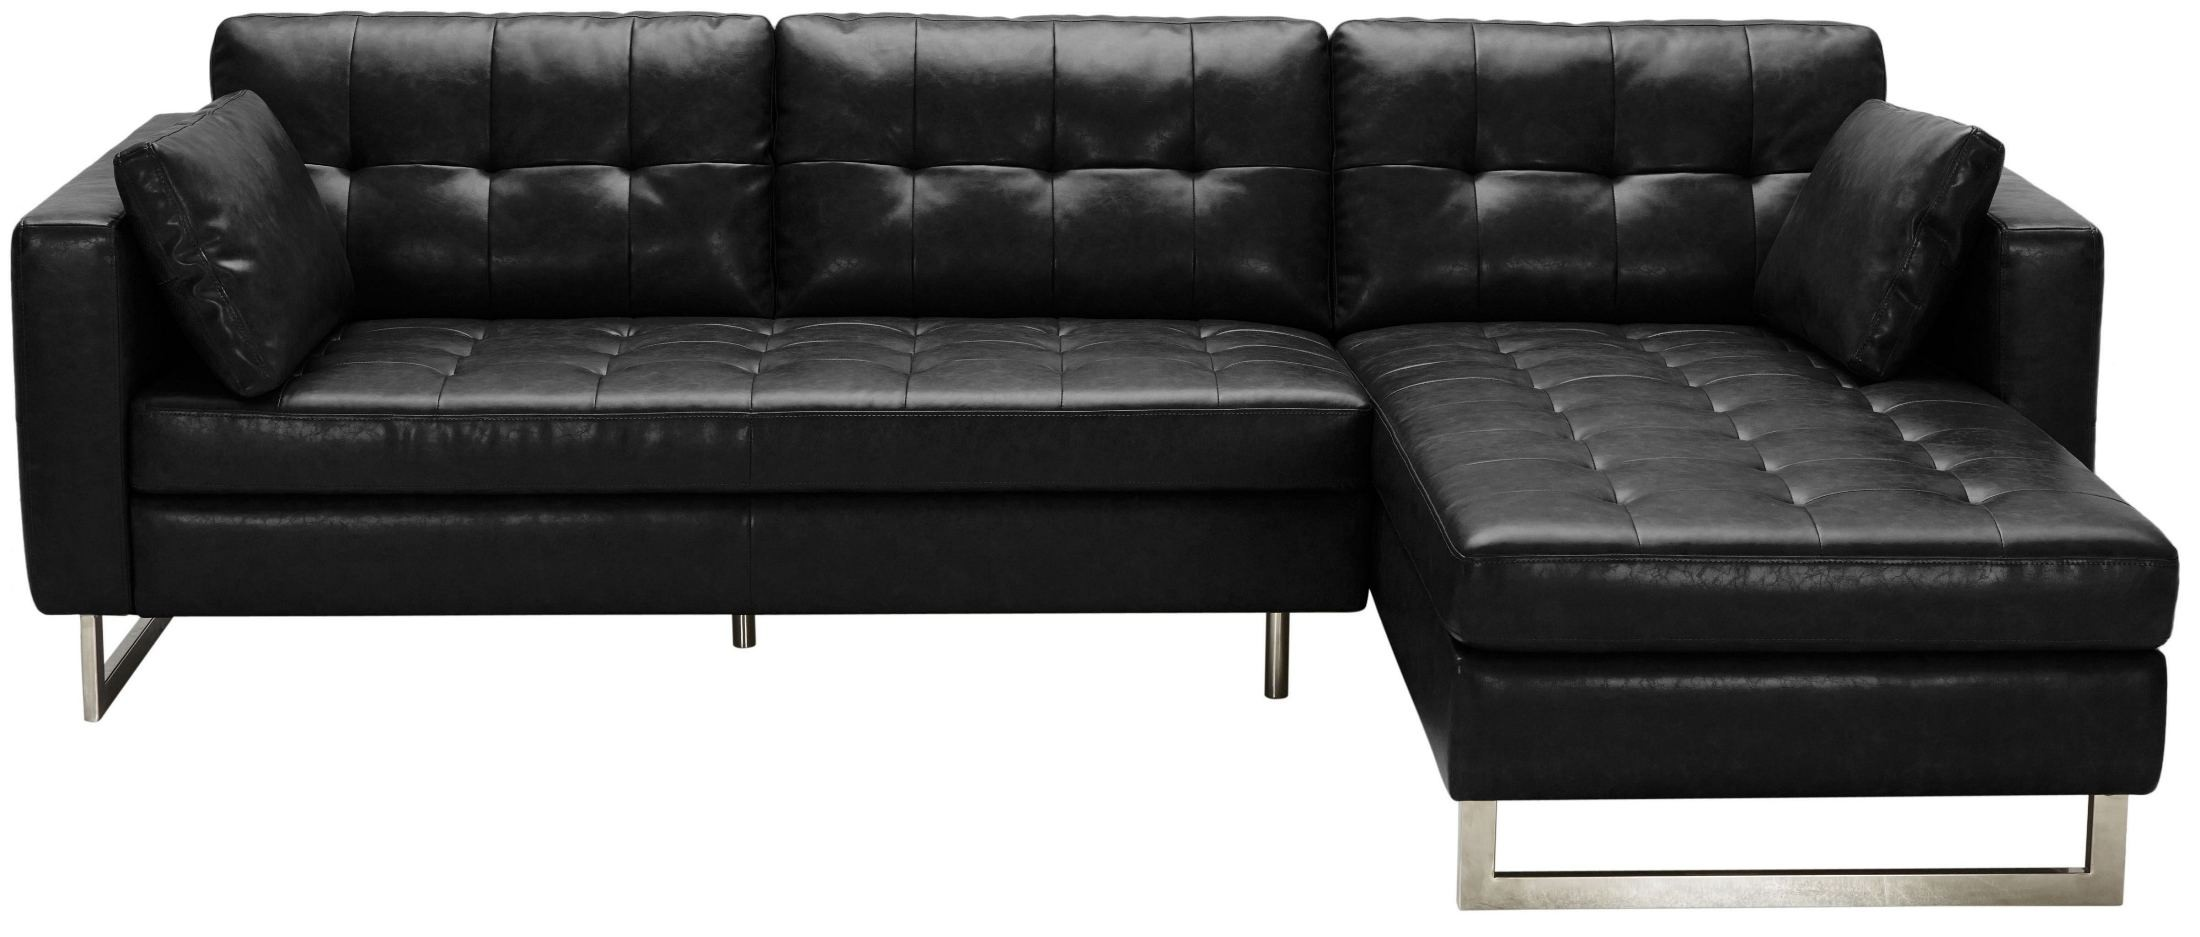 wilson black fog leather sofa chaise 100833 sunpan modern home. Black Bedroom Furniture Sets. Home Design Ideas